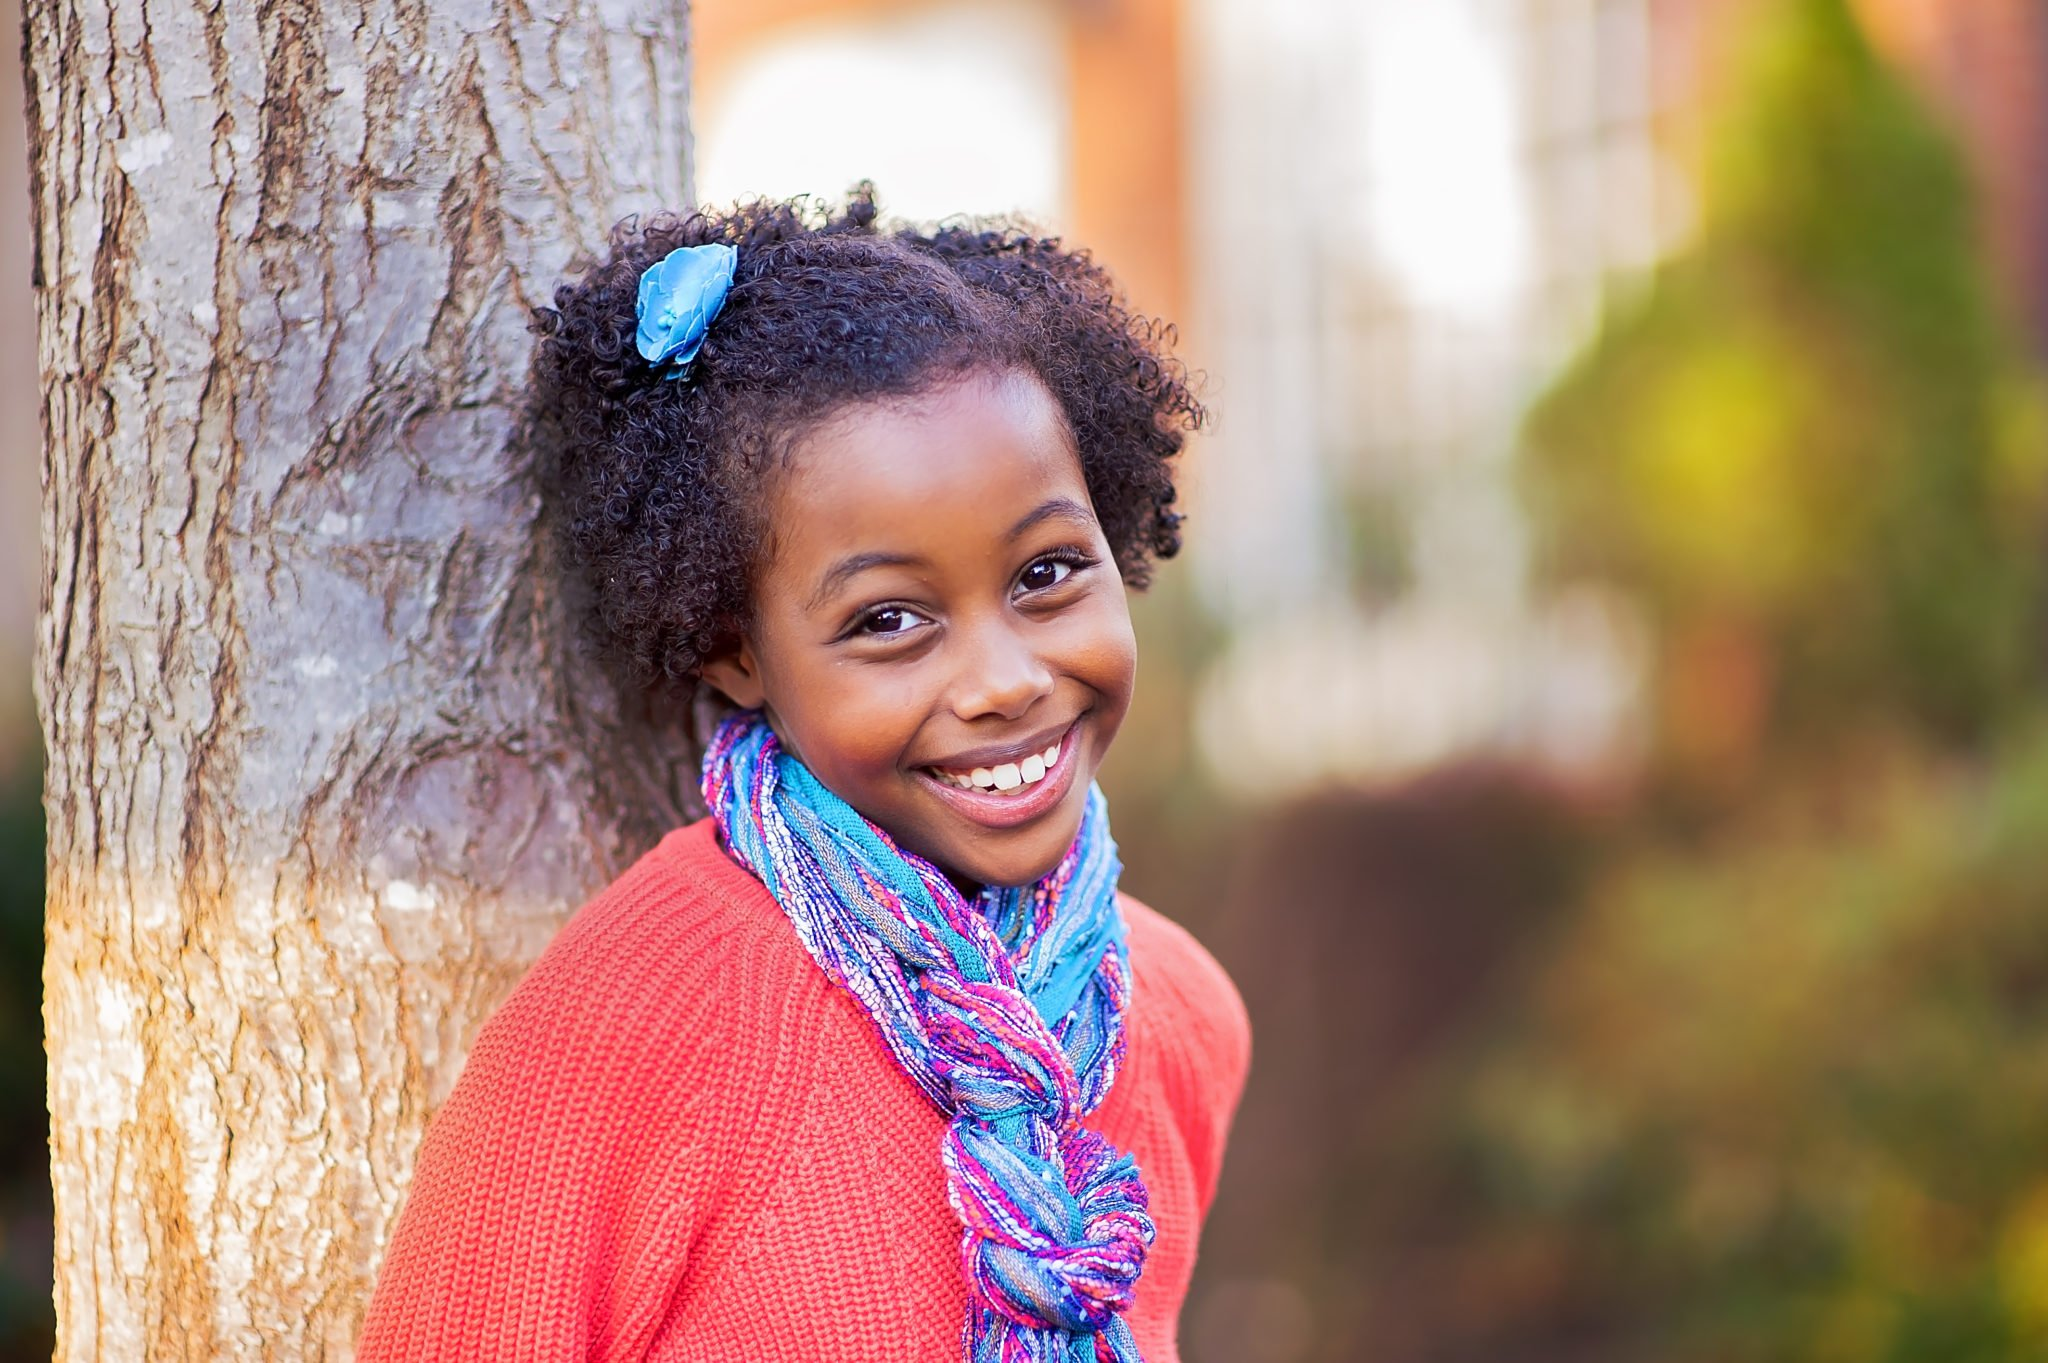 young African American girl wearing orange sweater and turquoise scarf